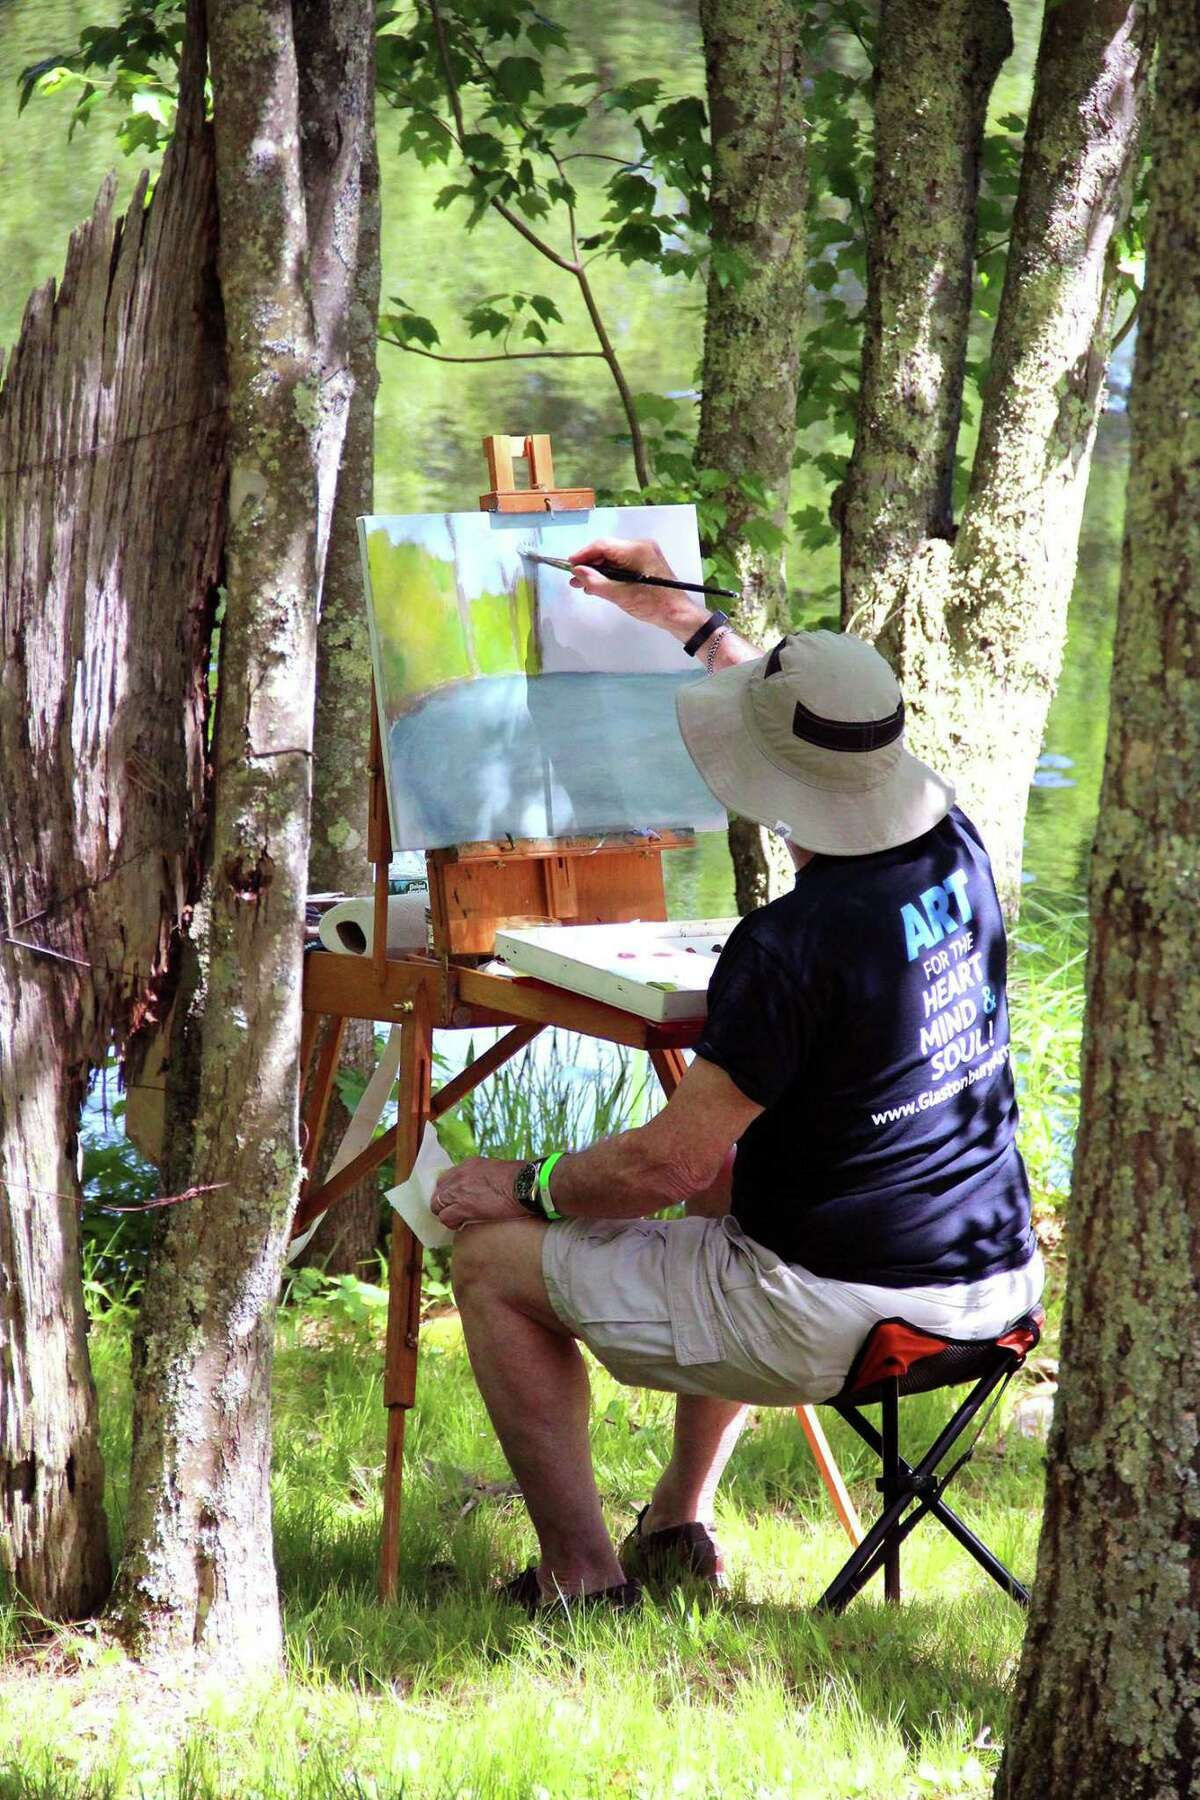 YOU PARK AT I-PARK: Arts collective I-Park in East Haddam (near Devil's Hopyard) will hold its Open Trails + Plein Air Paint-Out for artists, families and nature lovers on Saturday, Sept. 12, from 2-6 p.m. There will also be a new children's